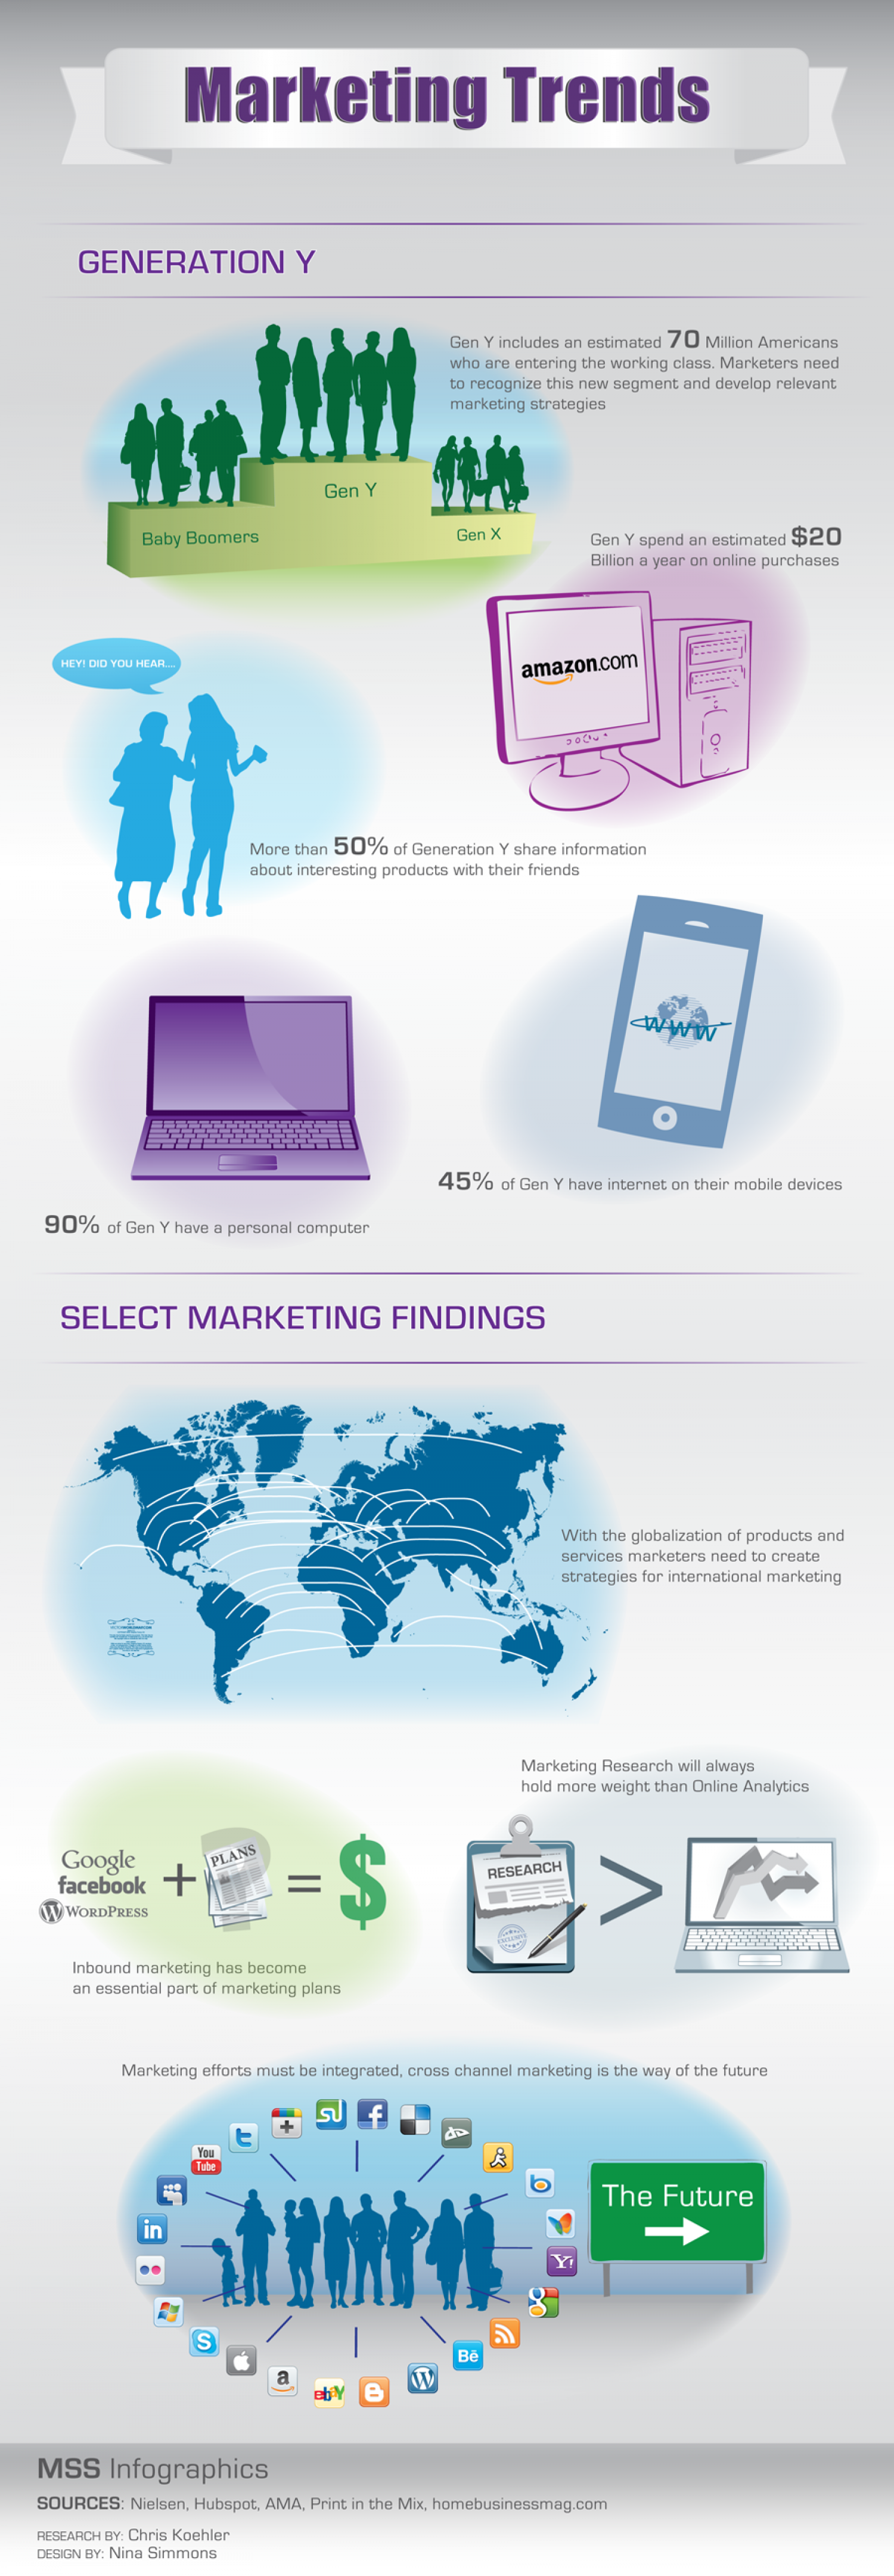 Marketing Trends Part III Infographic